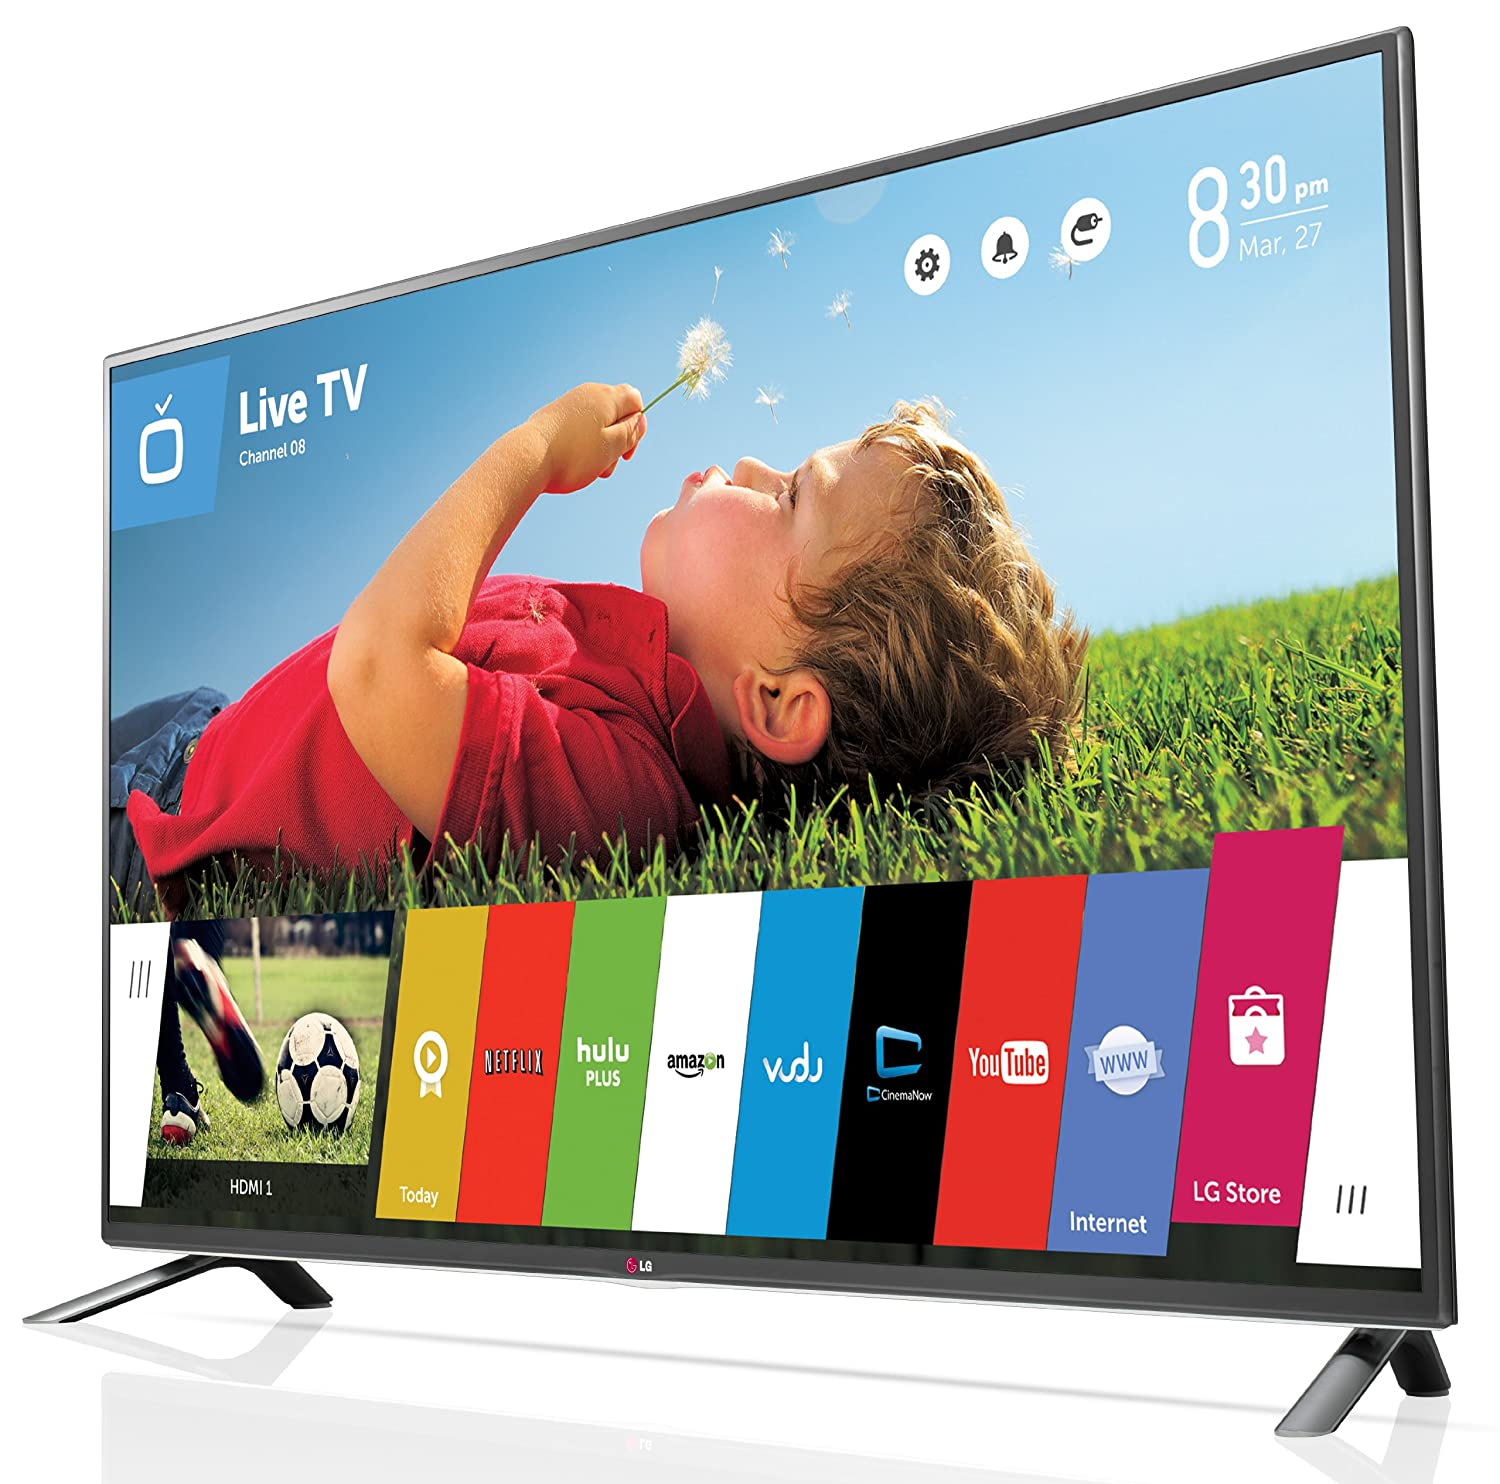 lg led tv. amazon.com: lg electronics 55lb6300 55-inch 1080p smart led tv (2014 model): lg led tv